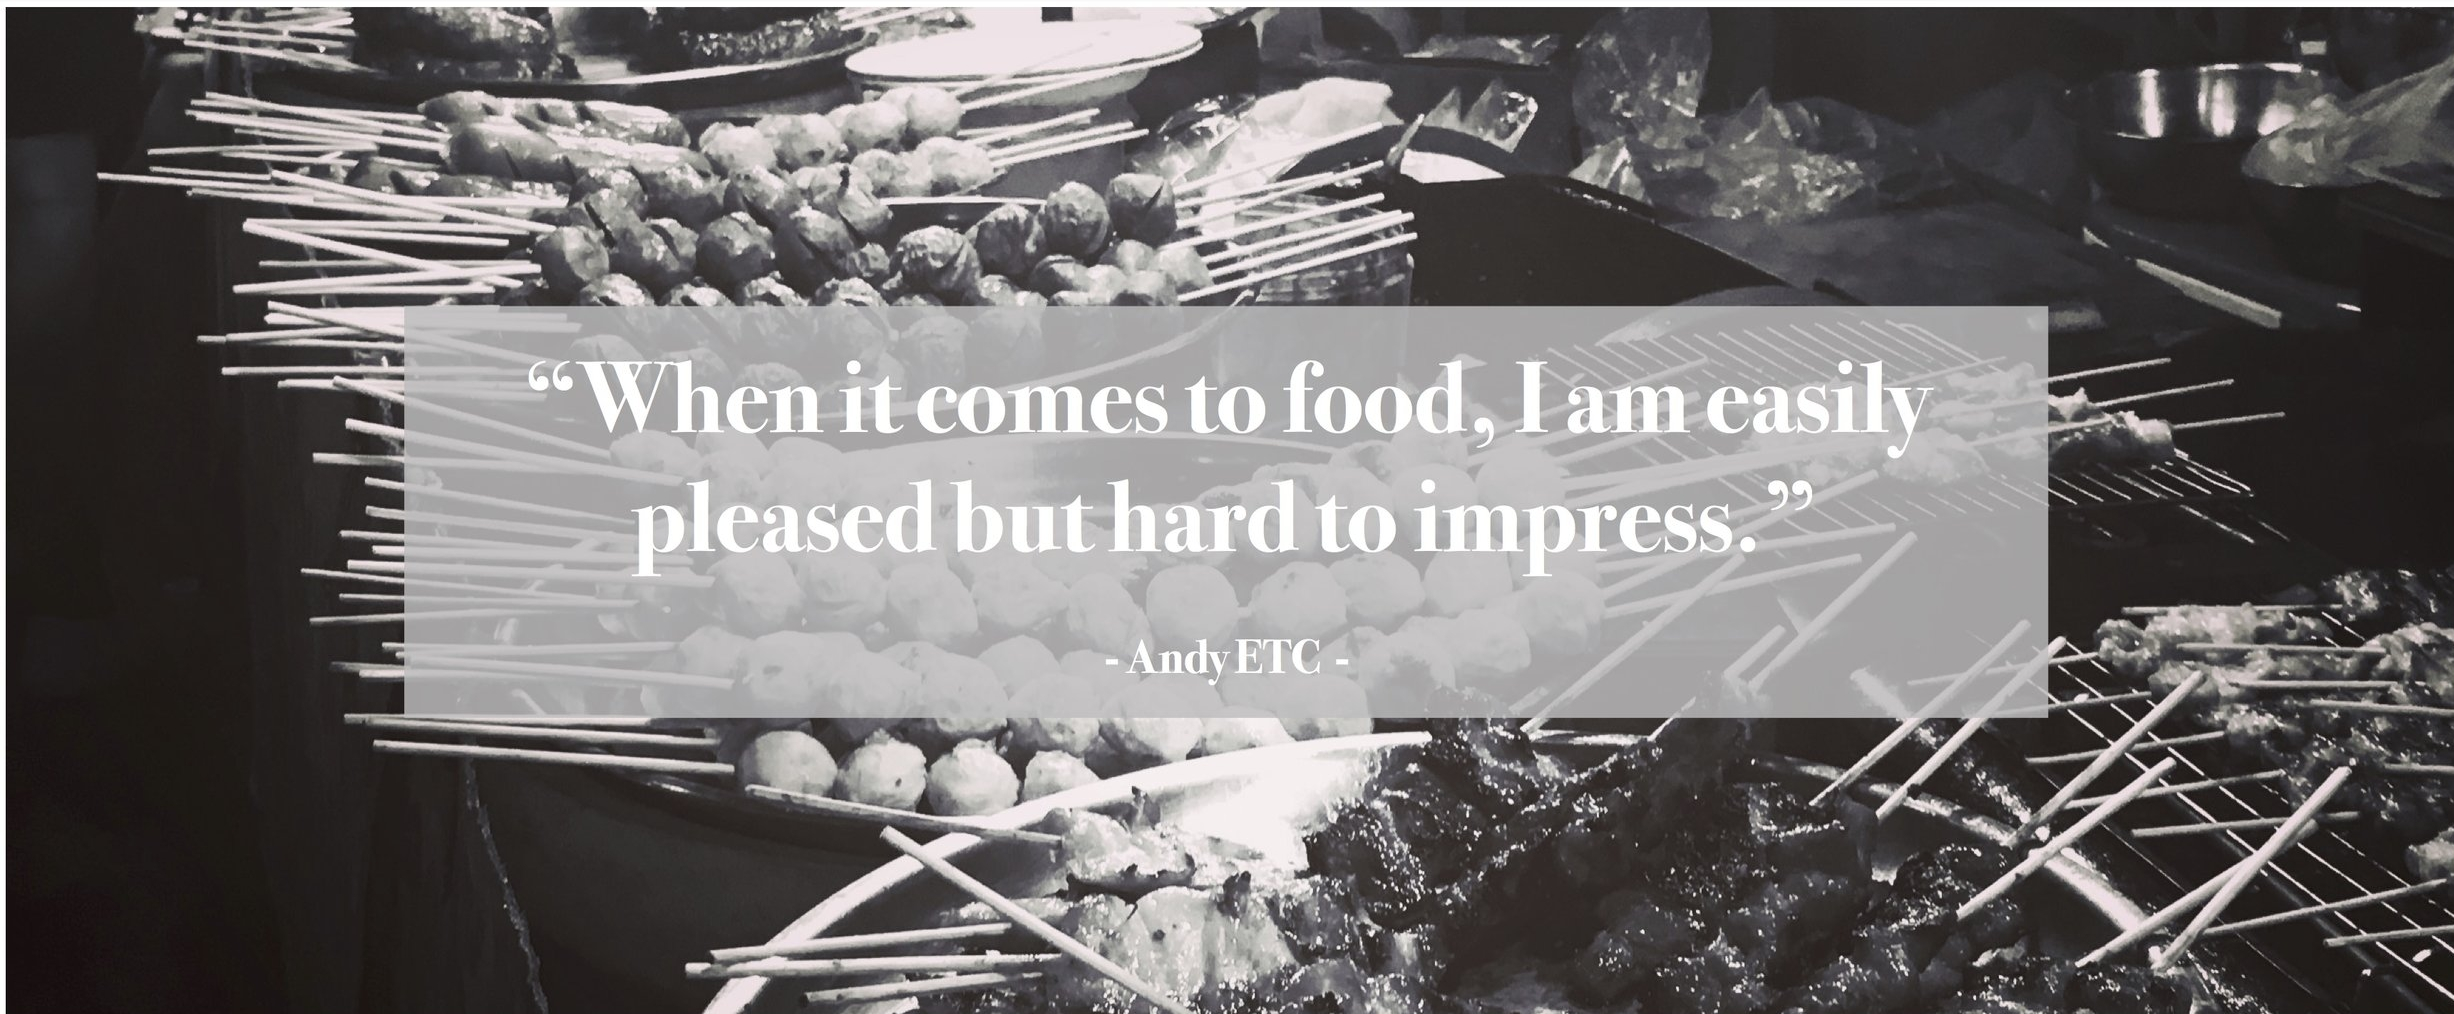 wHEN IT COMES TO FOOD QUOTE.jpg